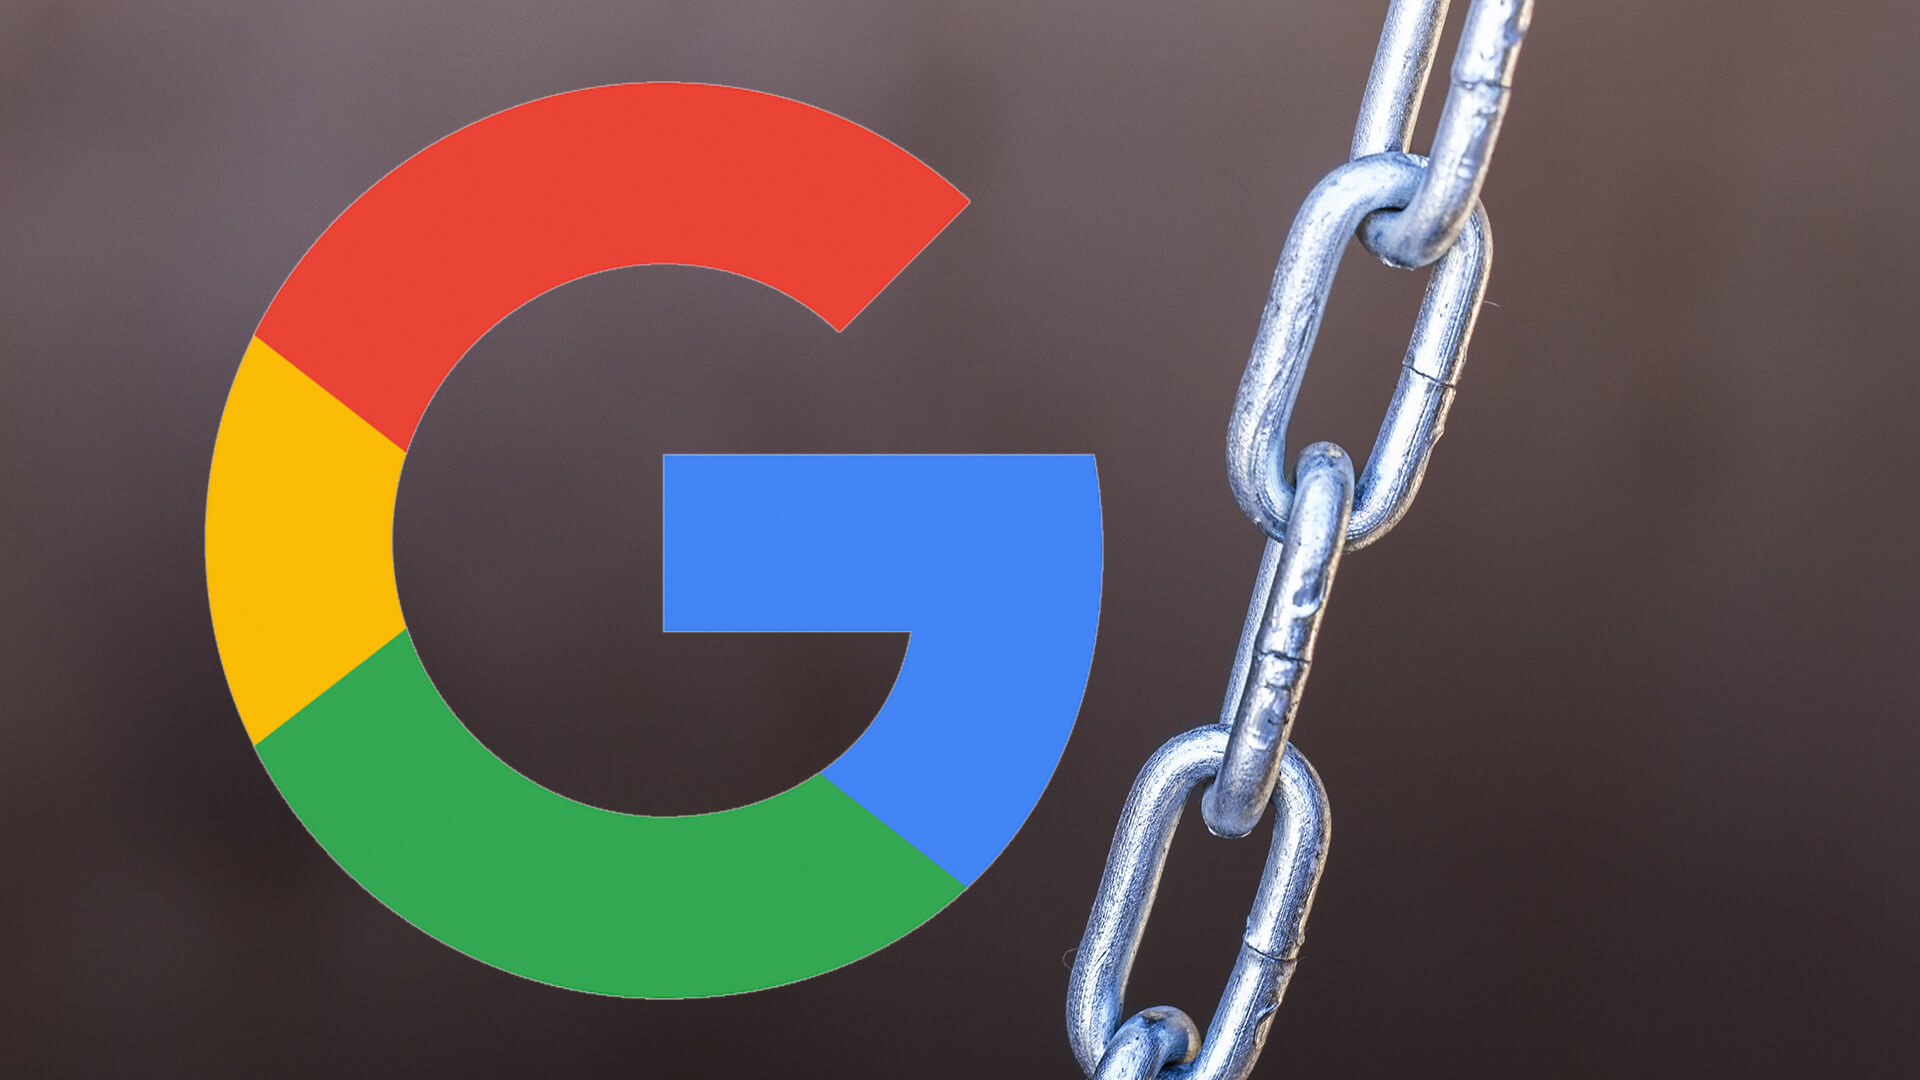 SEO - What really matters in Google's nofollow changes, SEOs ask